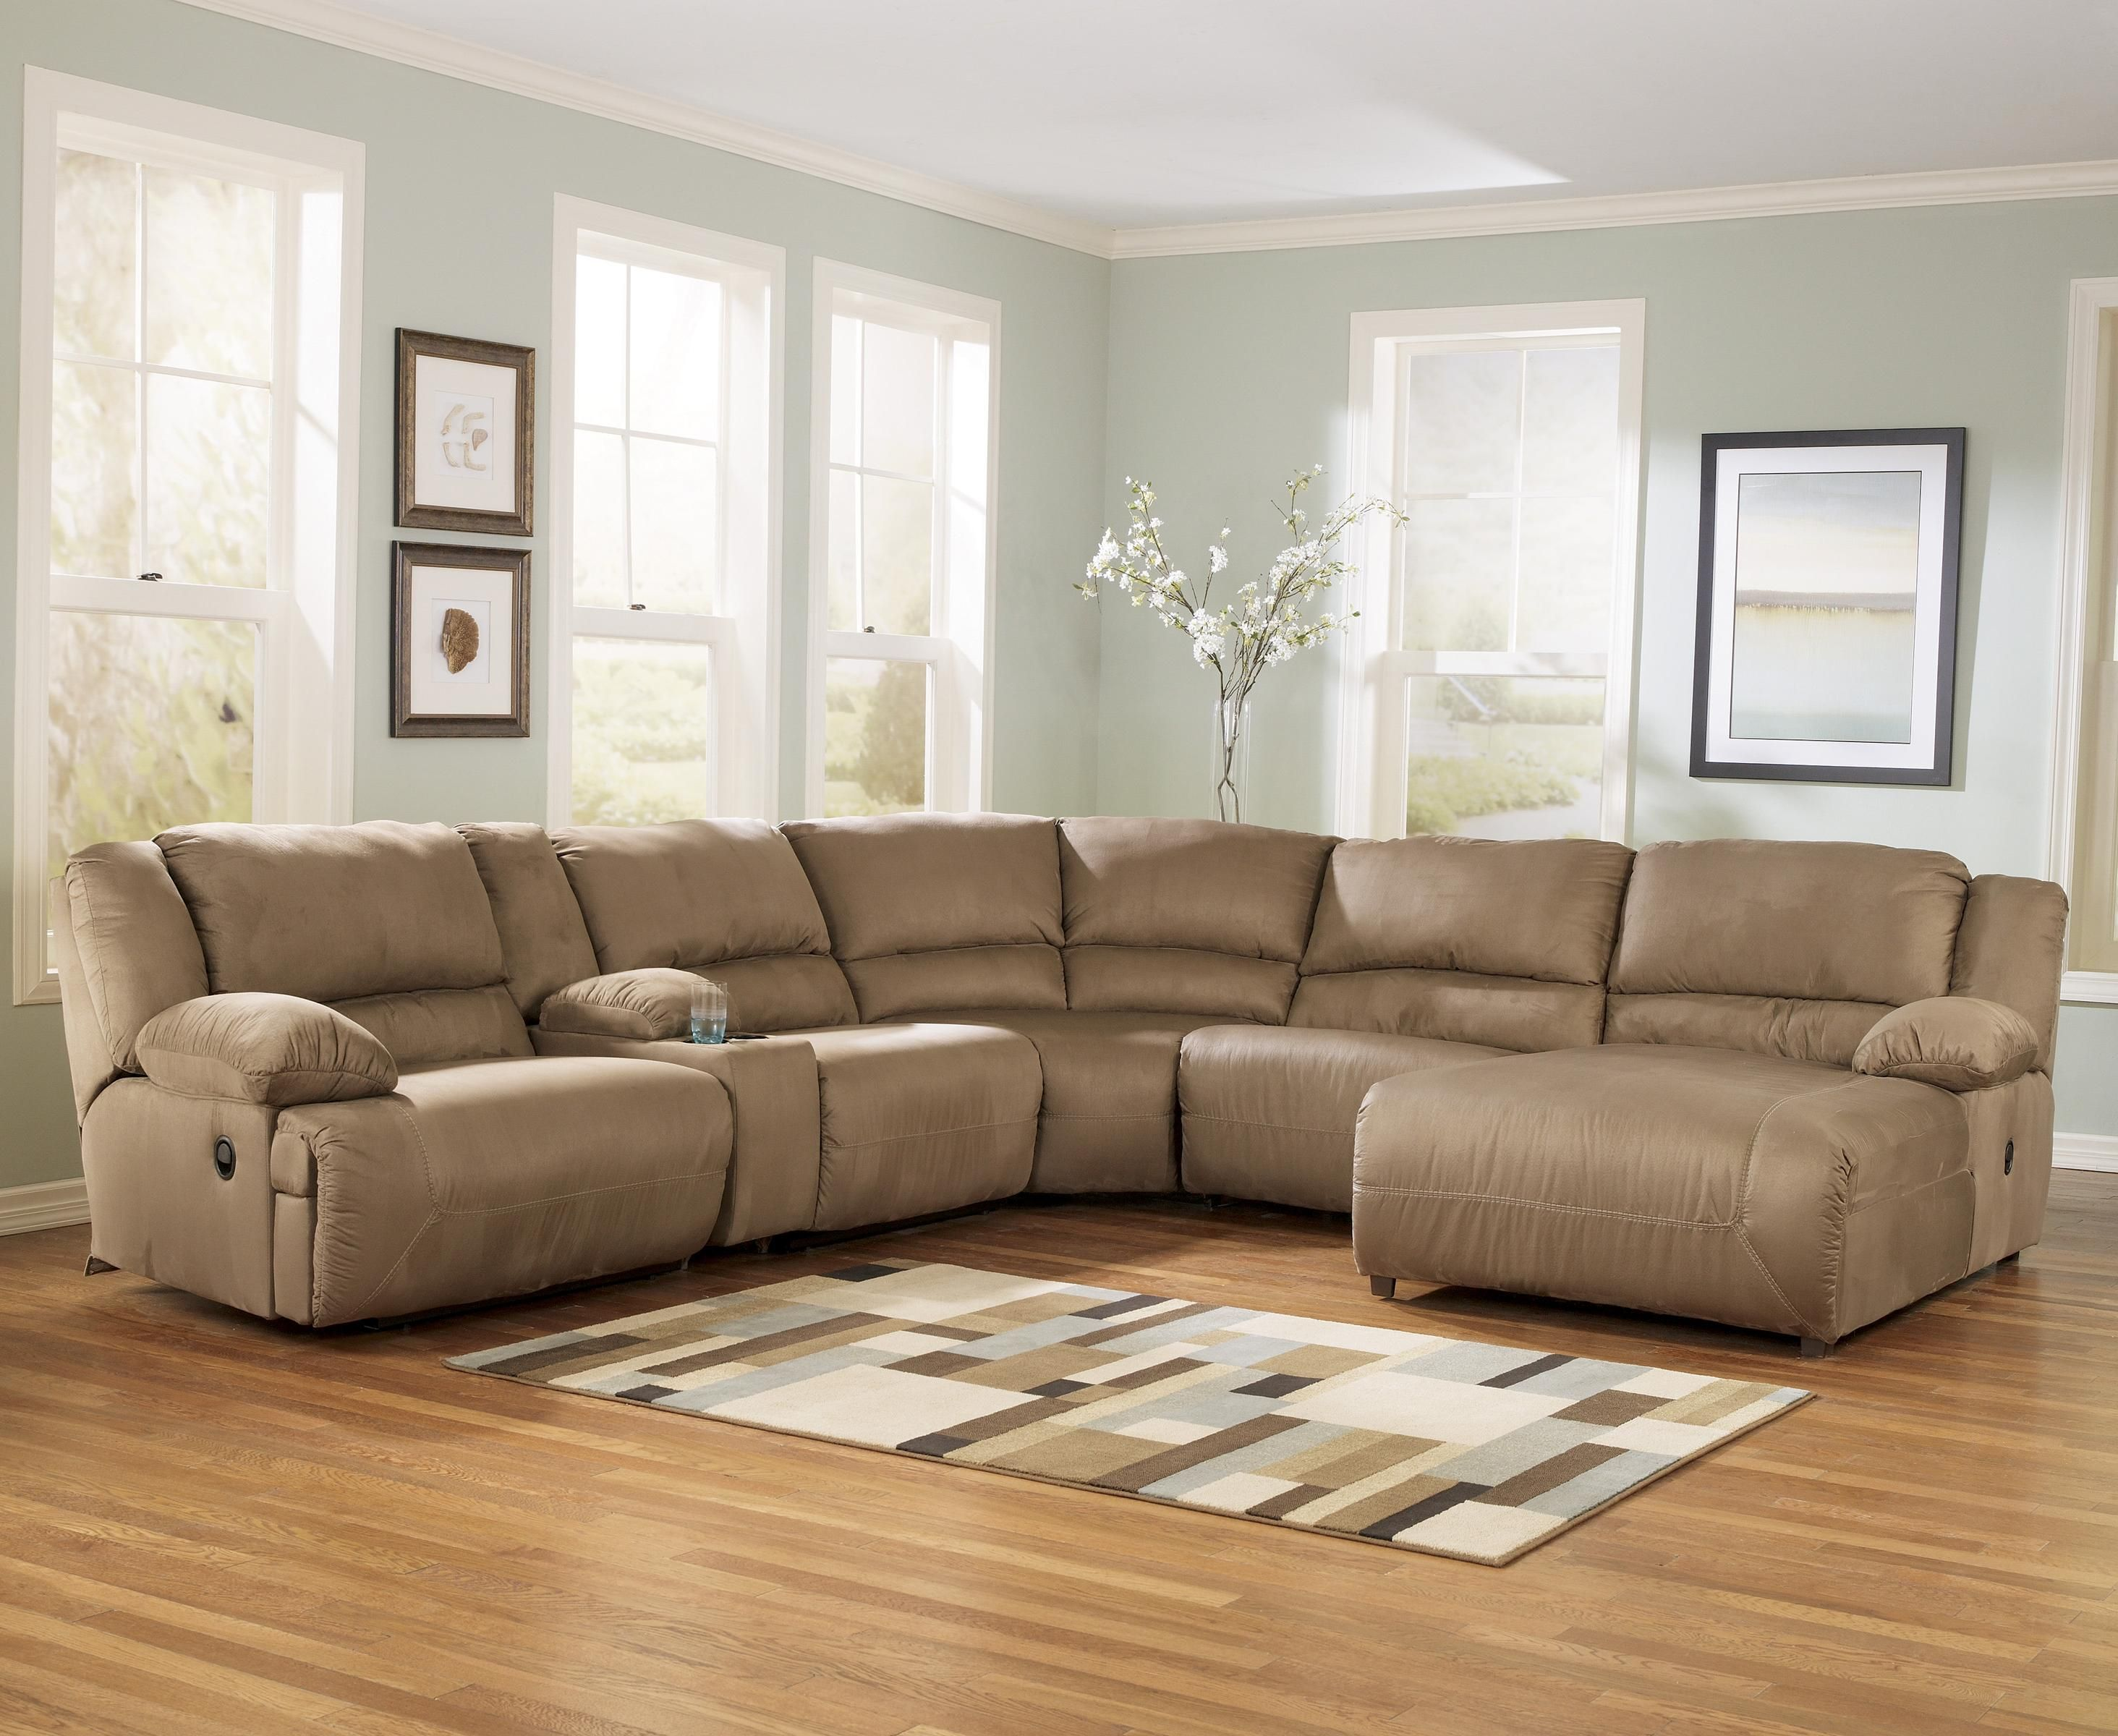 Hogan Mocha 6 Piece Motion Sectional With Right Chaise And Console